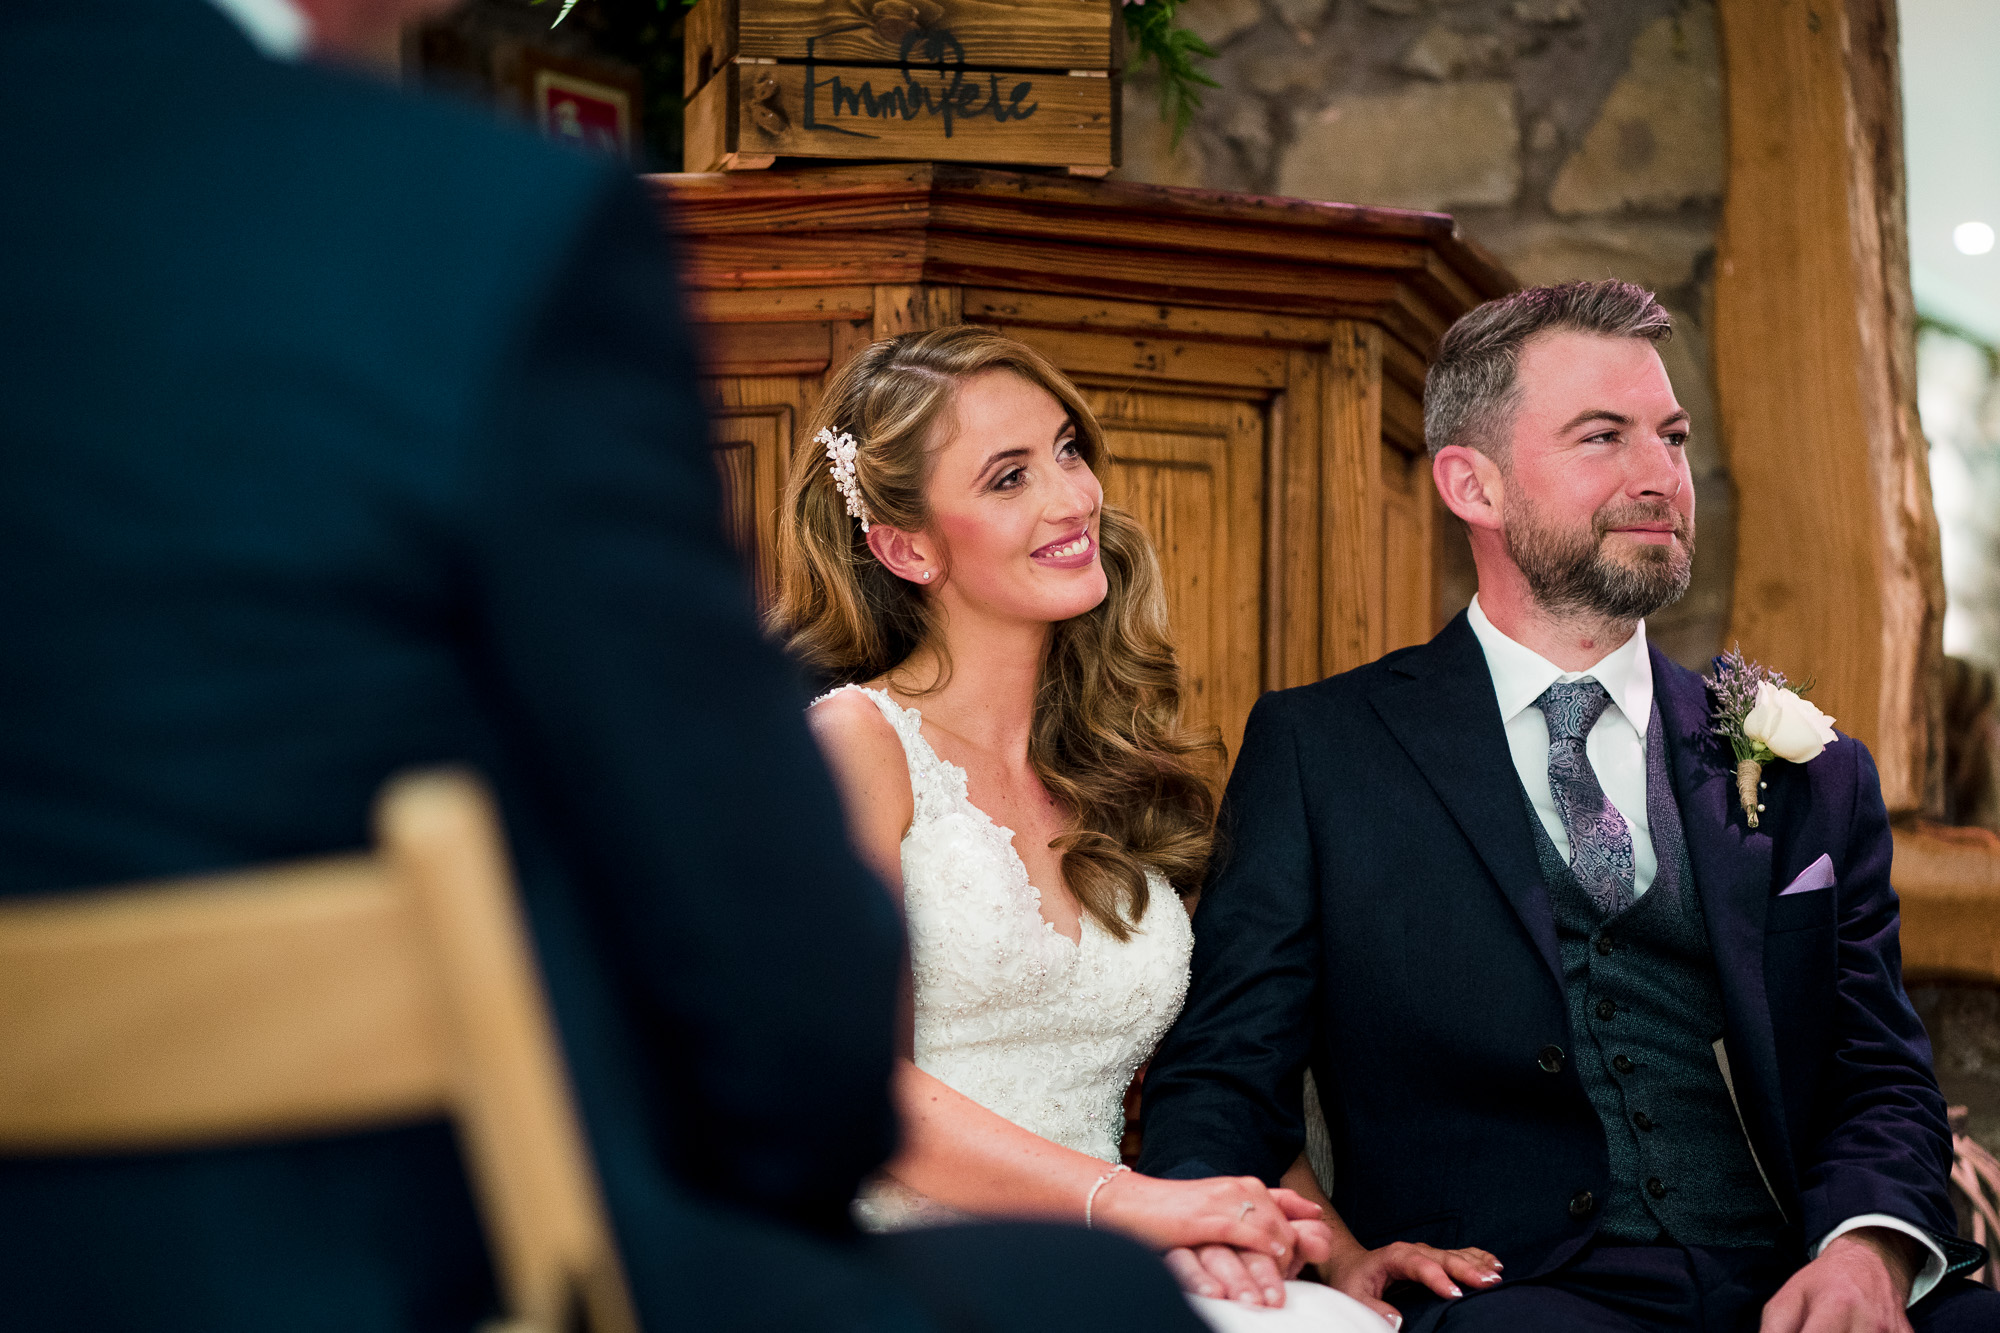 Tower Hill BArn Wedding Photographer based in north west england (20 of 35).jpg